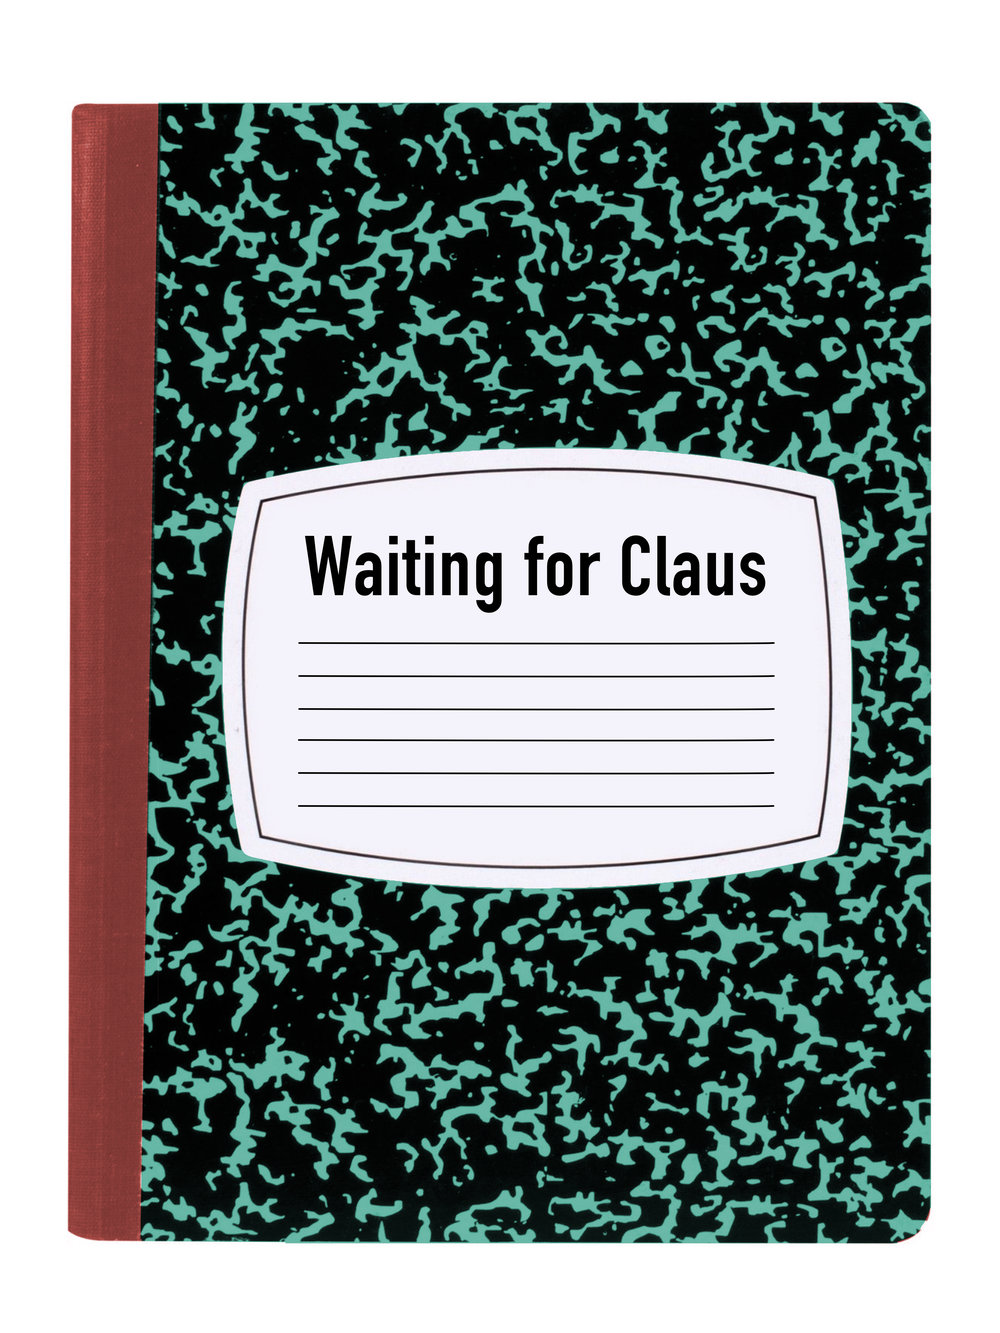 WAITING FOR CLAUS